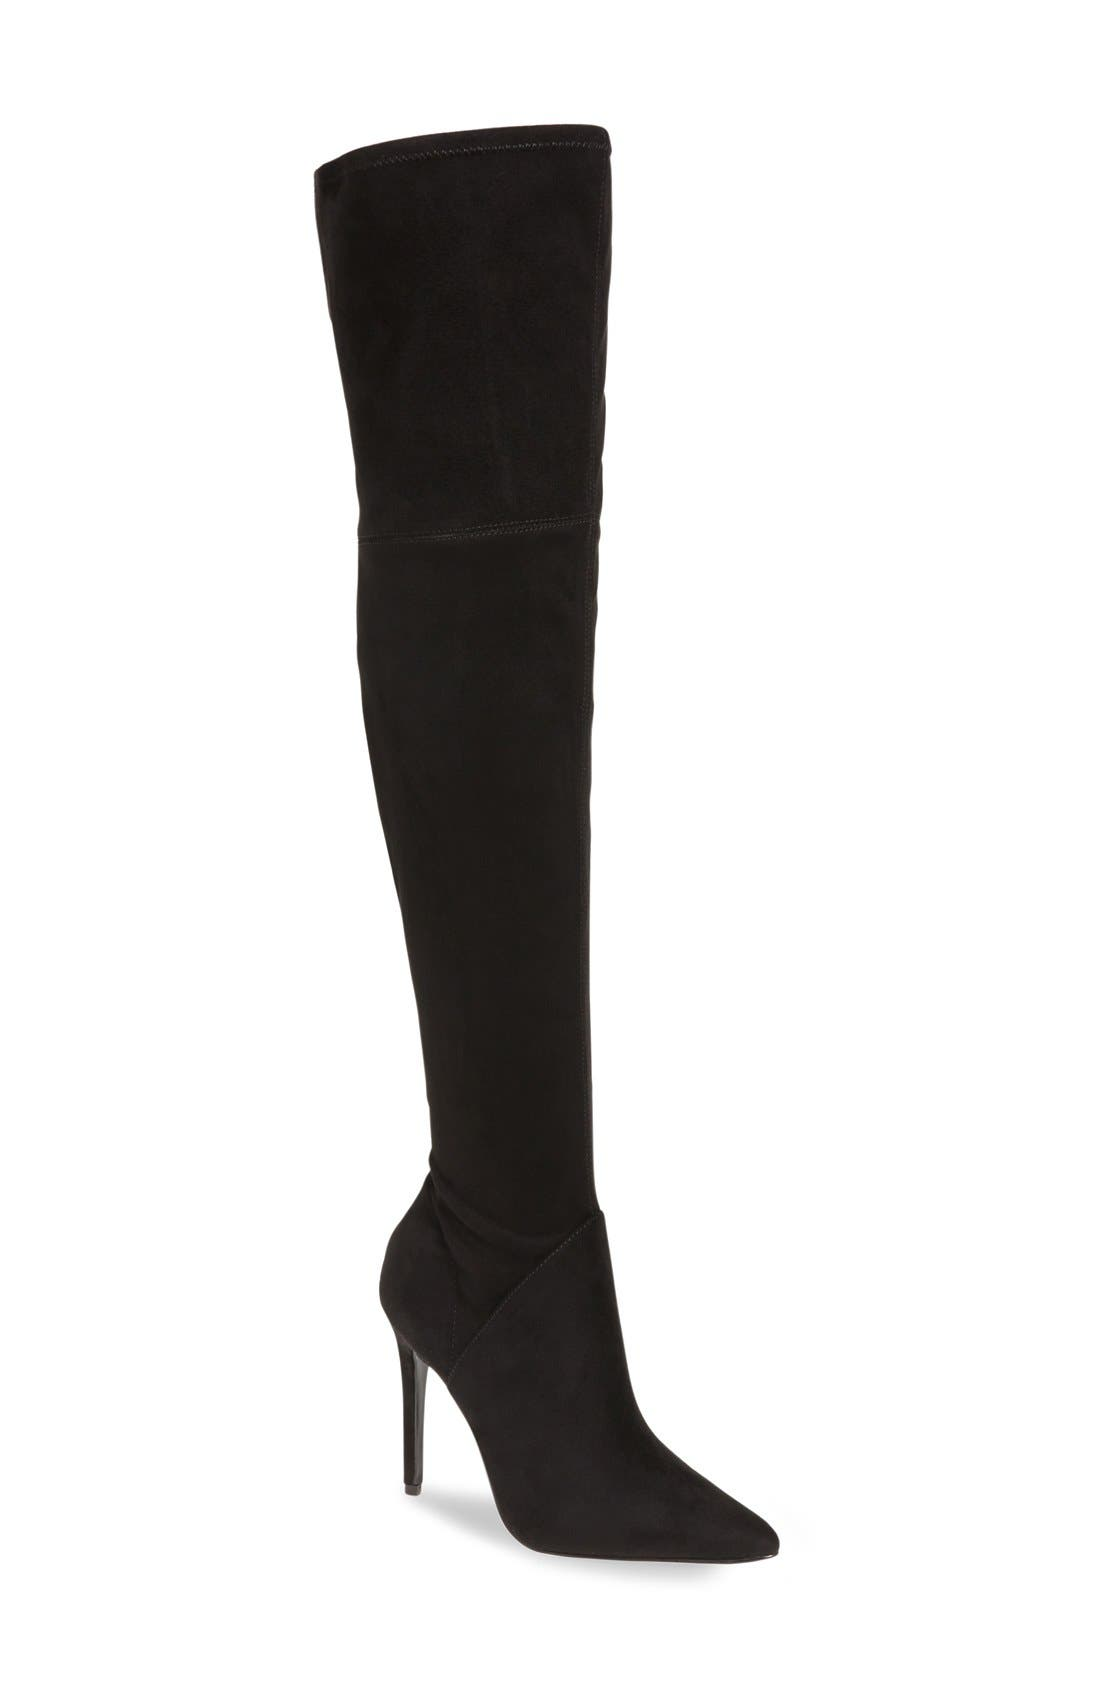 Main Image - KENDALL + KYLIE Kayla Stretch Over the Knee Boot (Women)